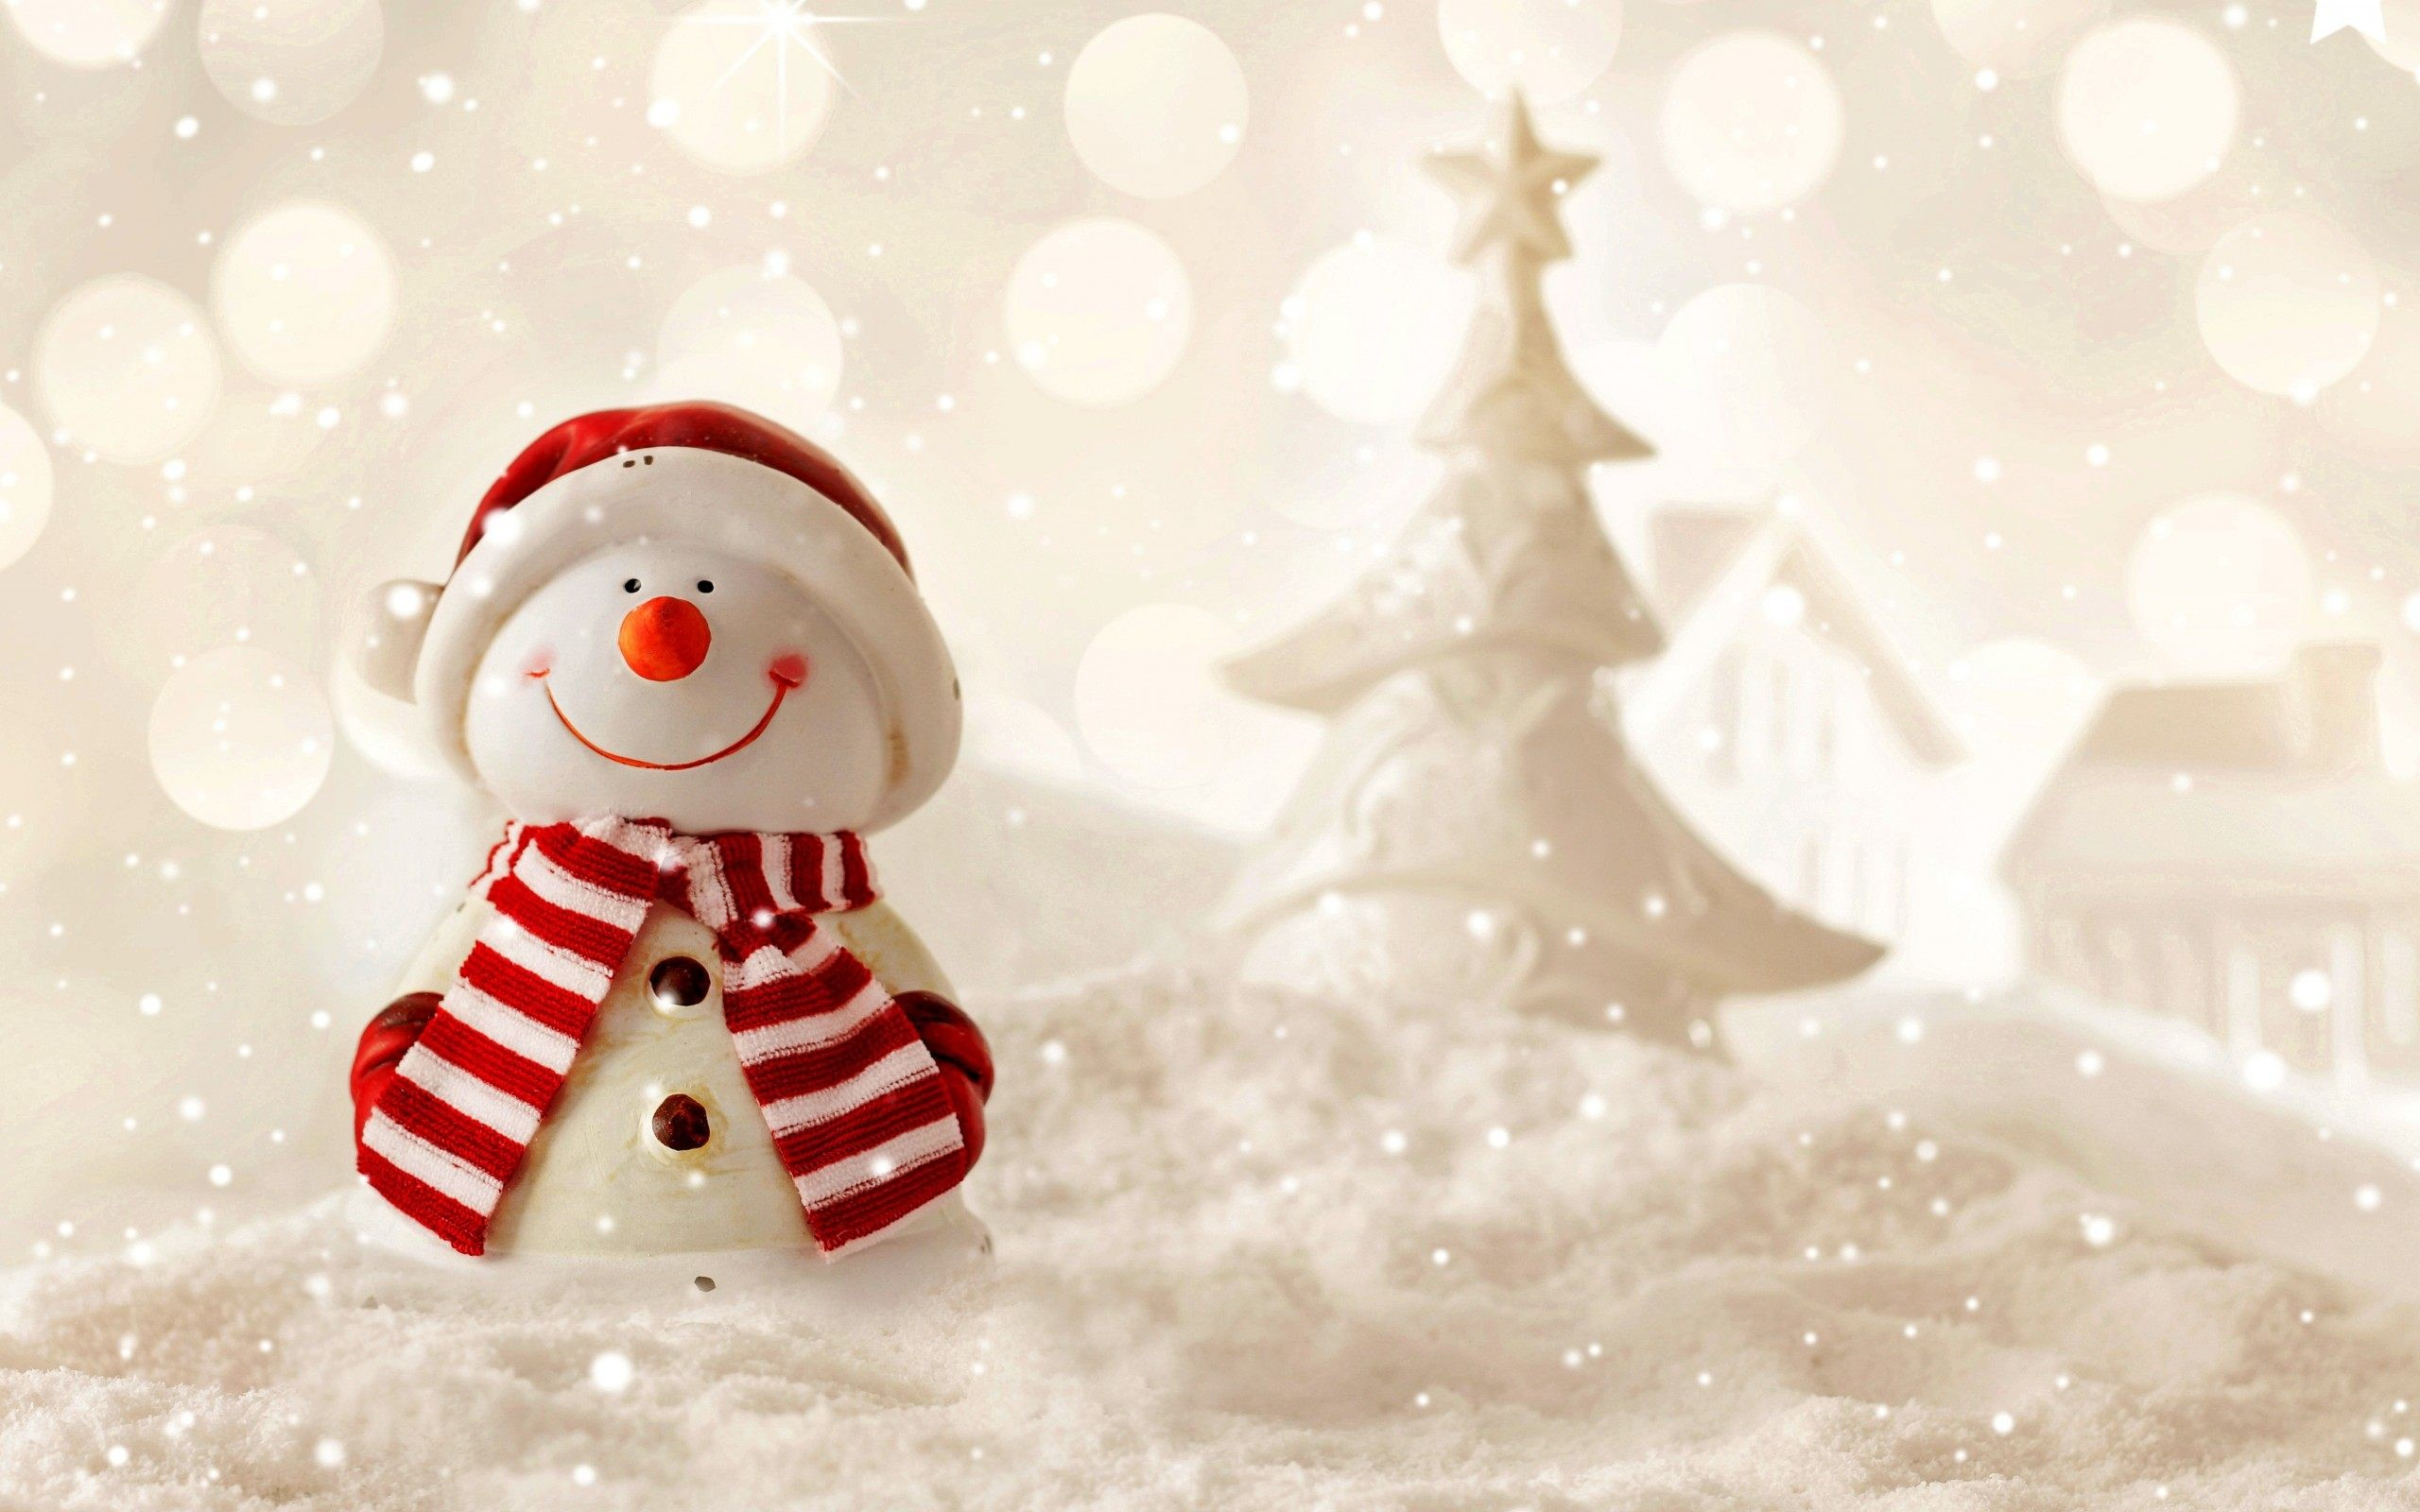 Res: 2560x1600, Snowman Holidays Wallpaper Background 52526